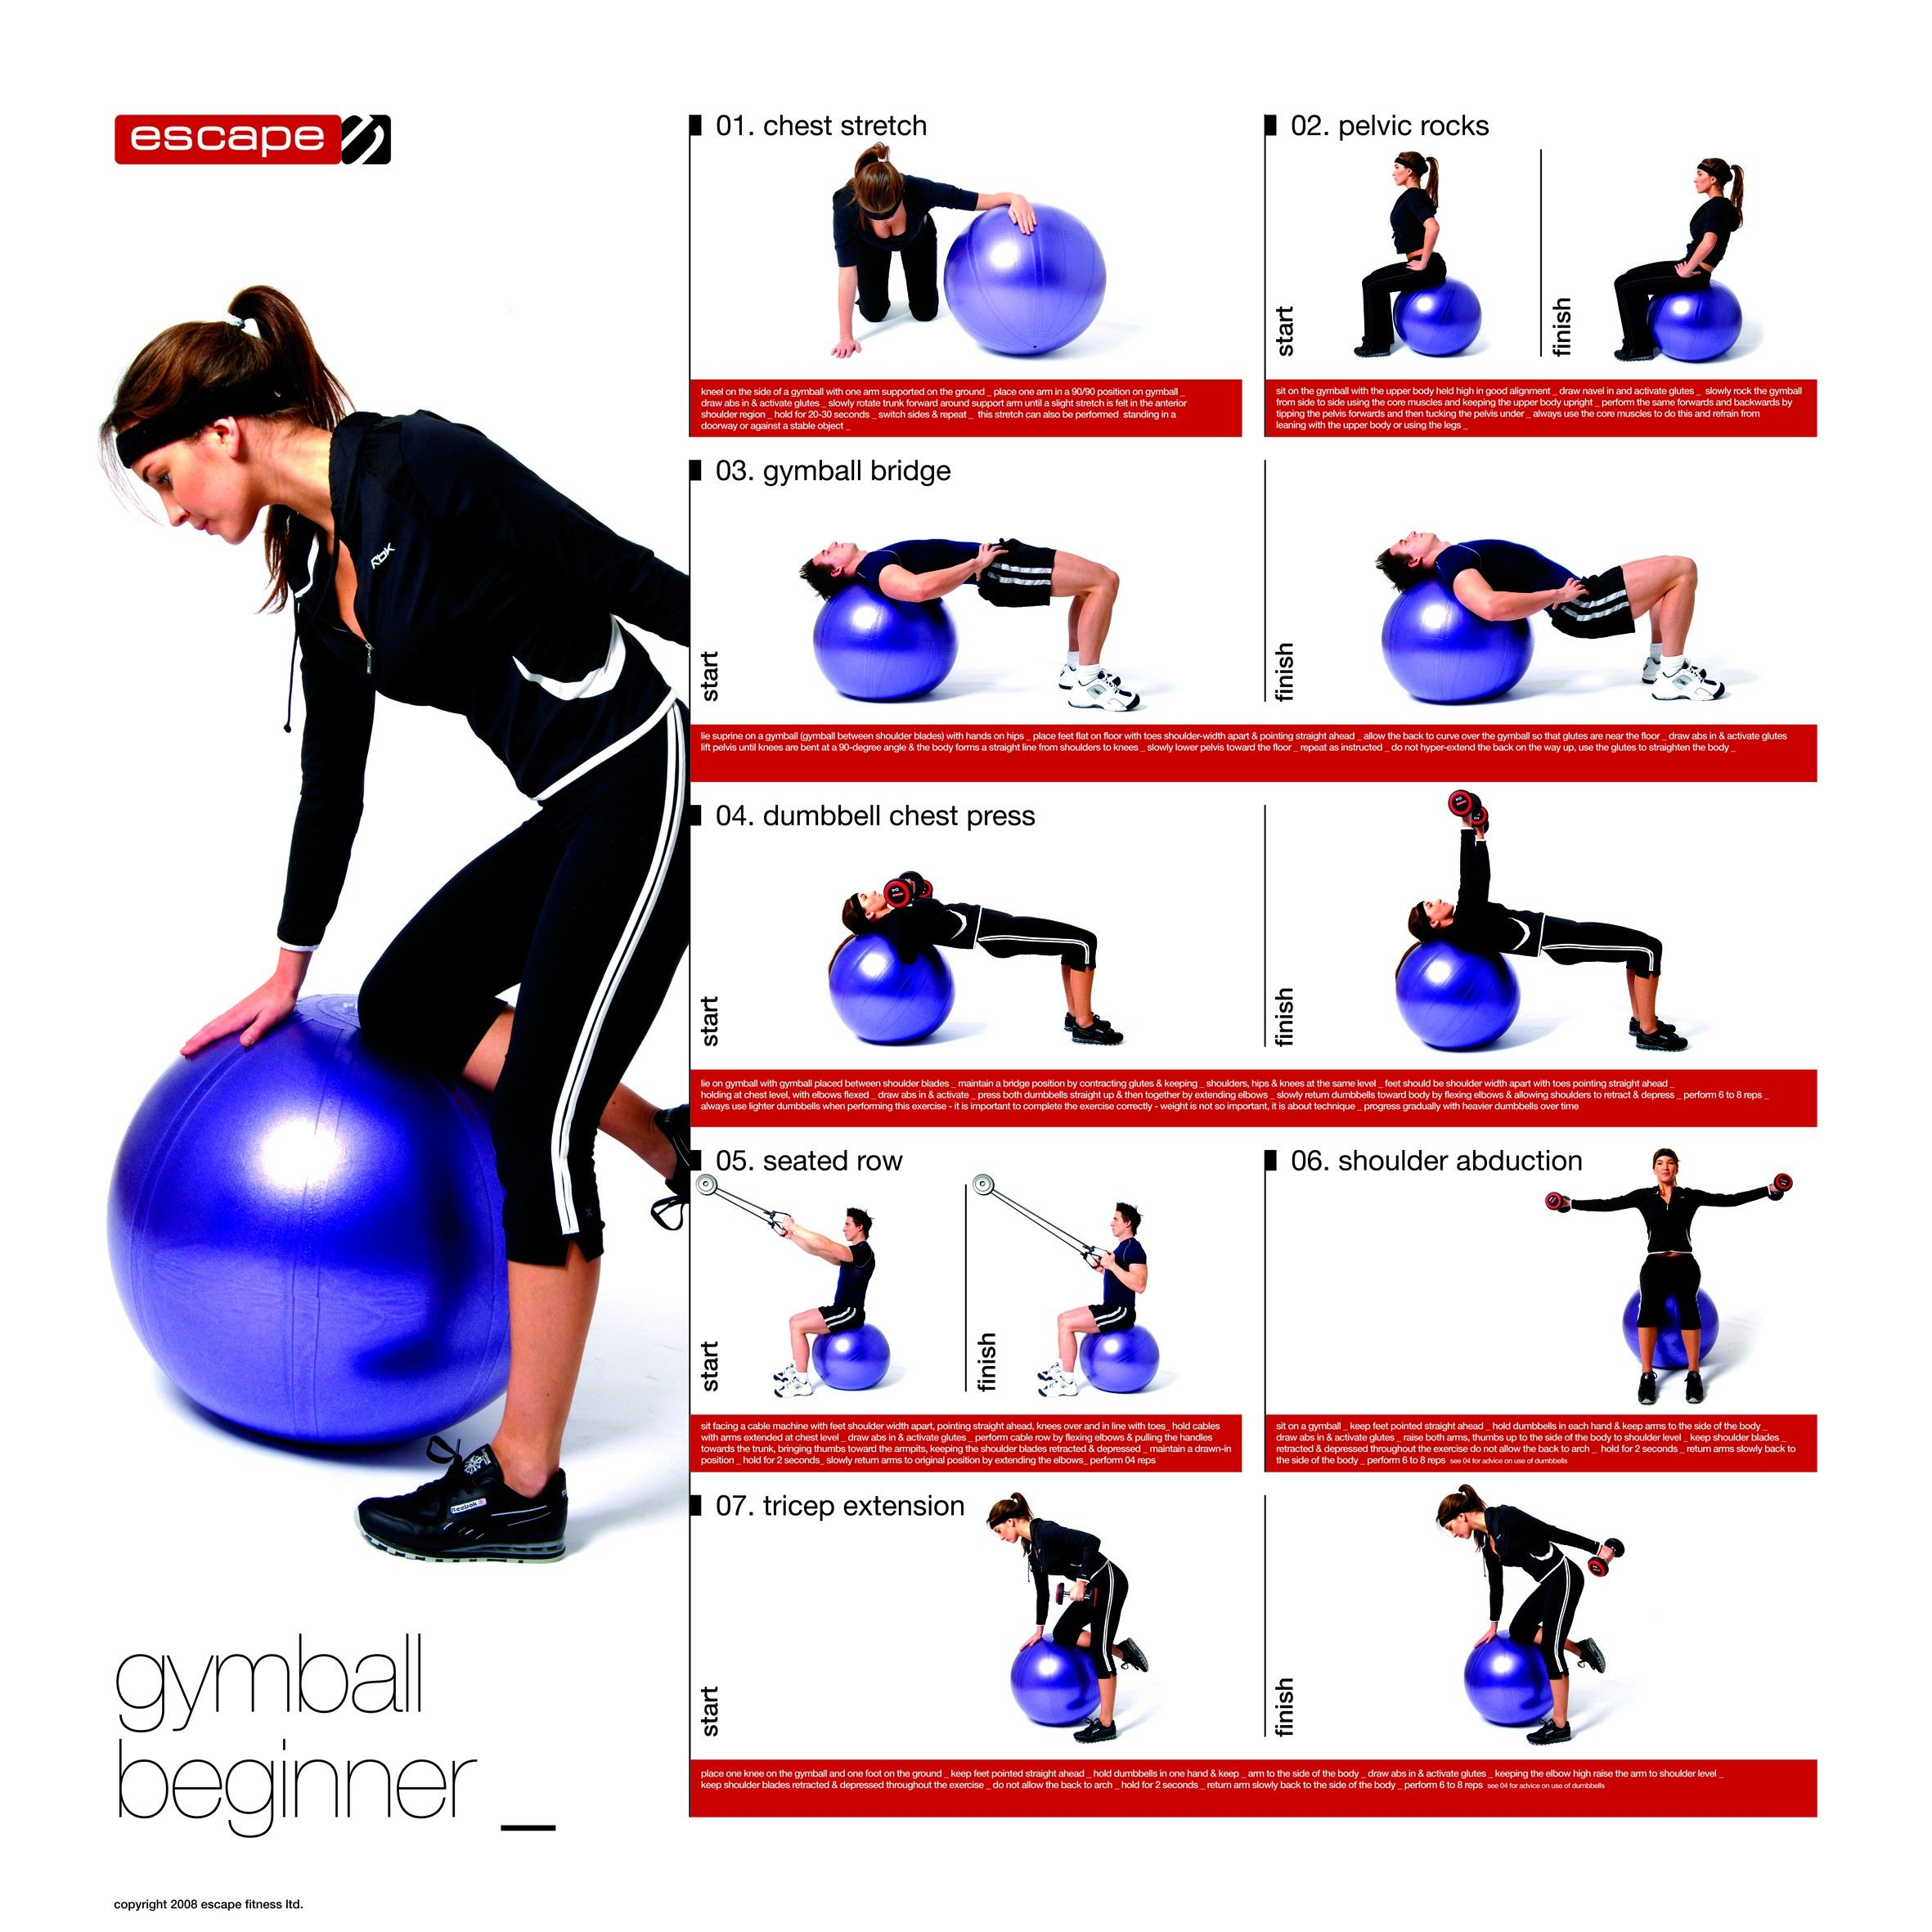 gymball poster beginner via escape fitness healthy strong healthy living cooking. Black Bedroom Furniture Sets. Home Design Ideas